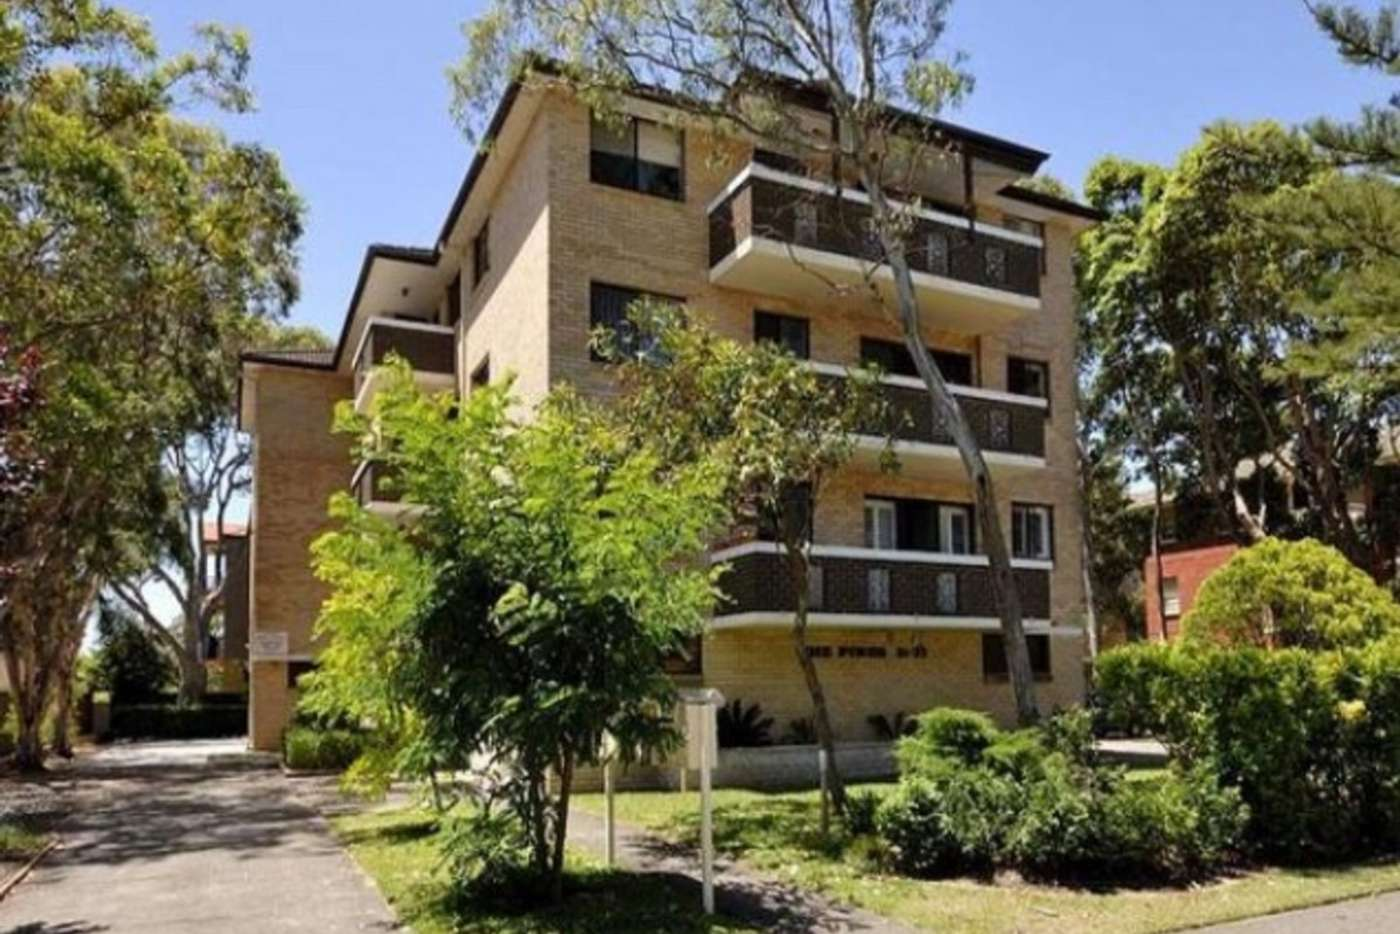 Main view of Homely unit listing, 5/31-33 Girrilang Street, Cronulla NSW 2230